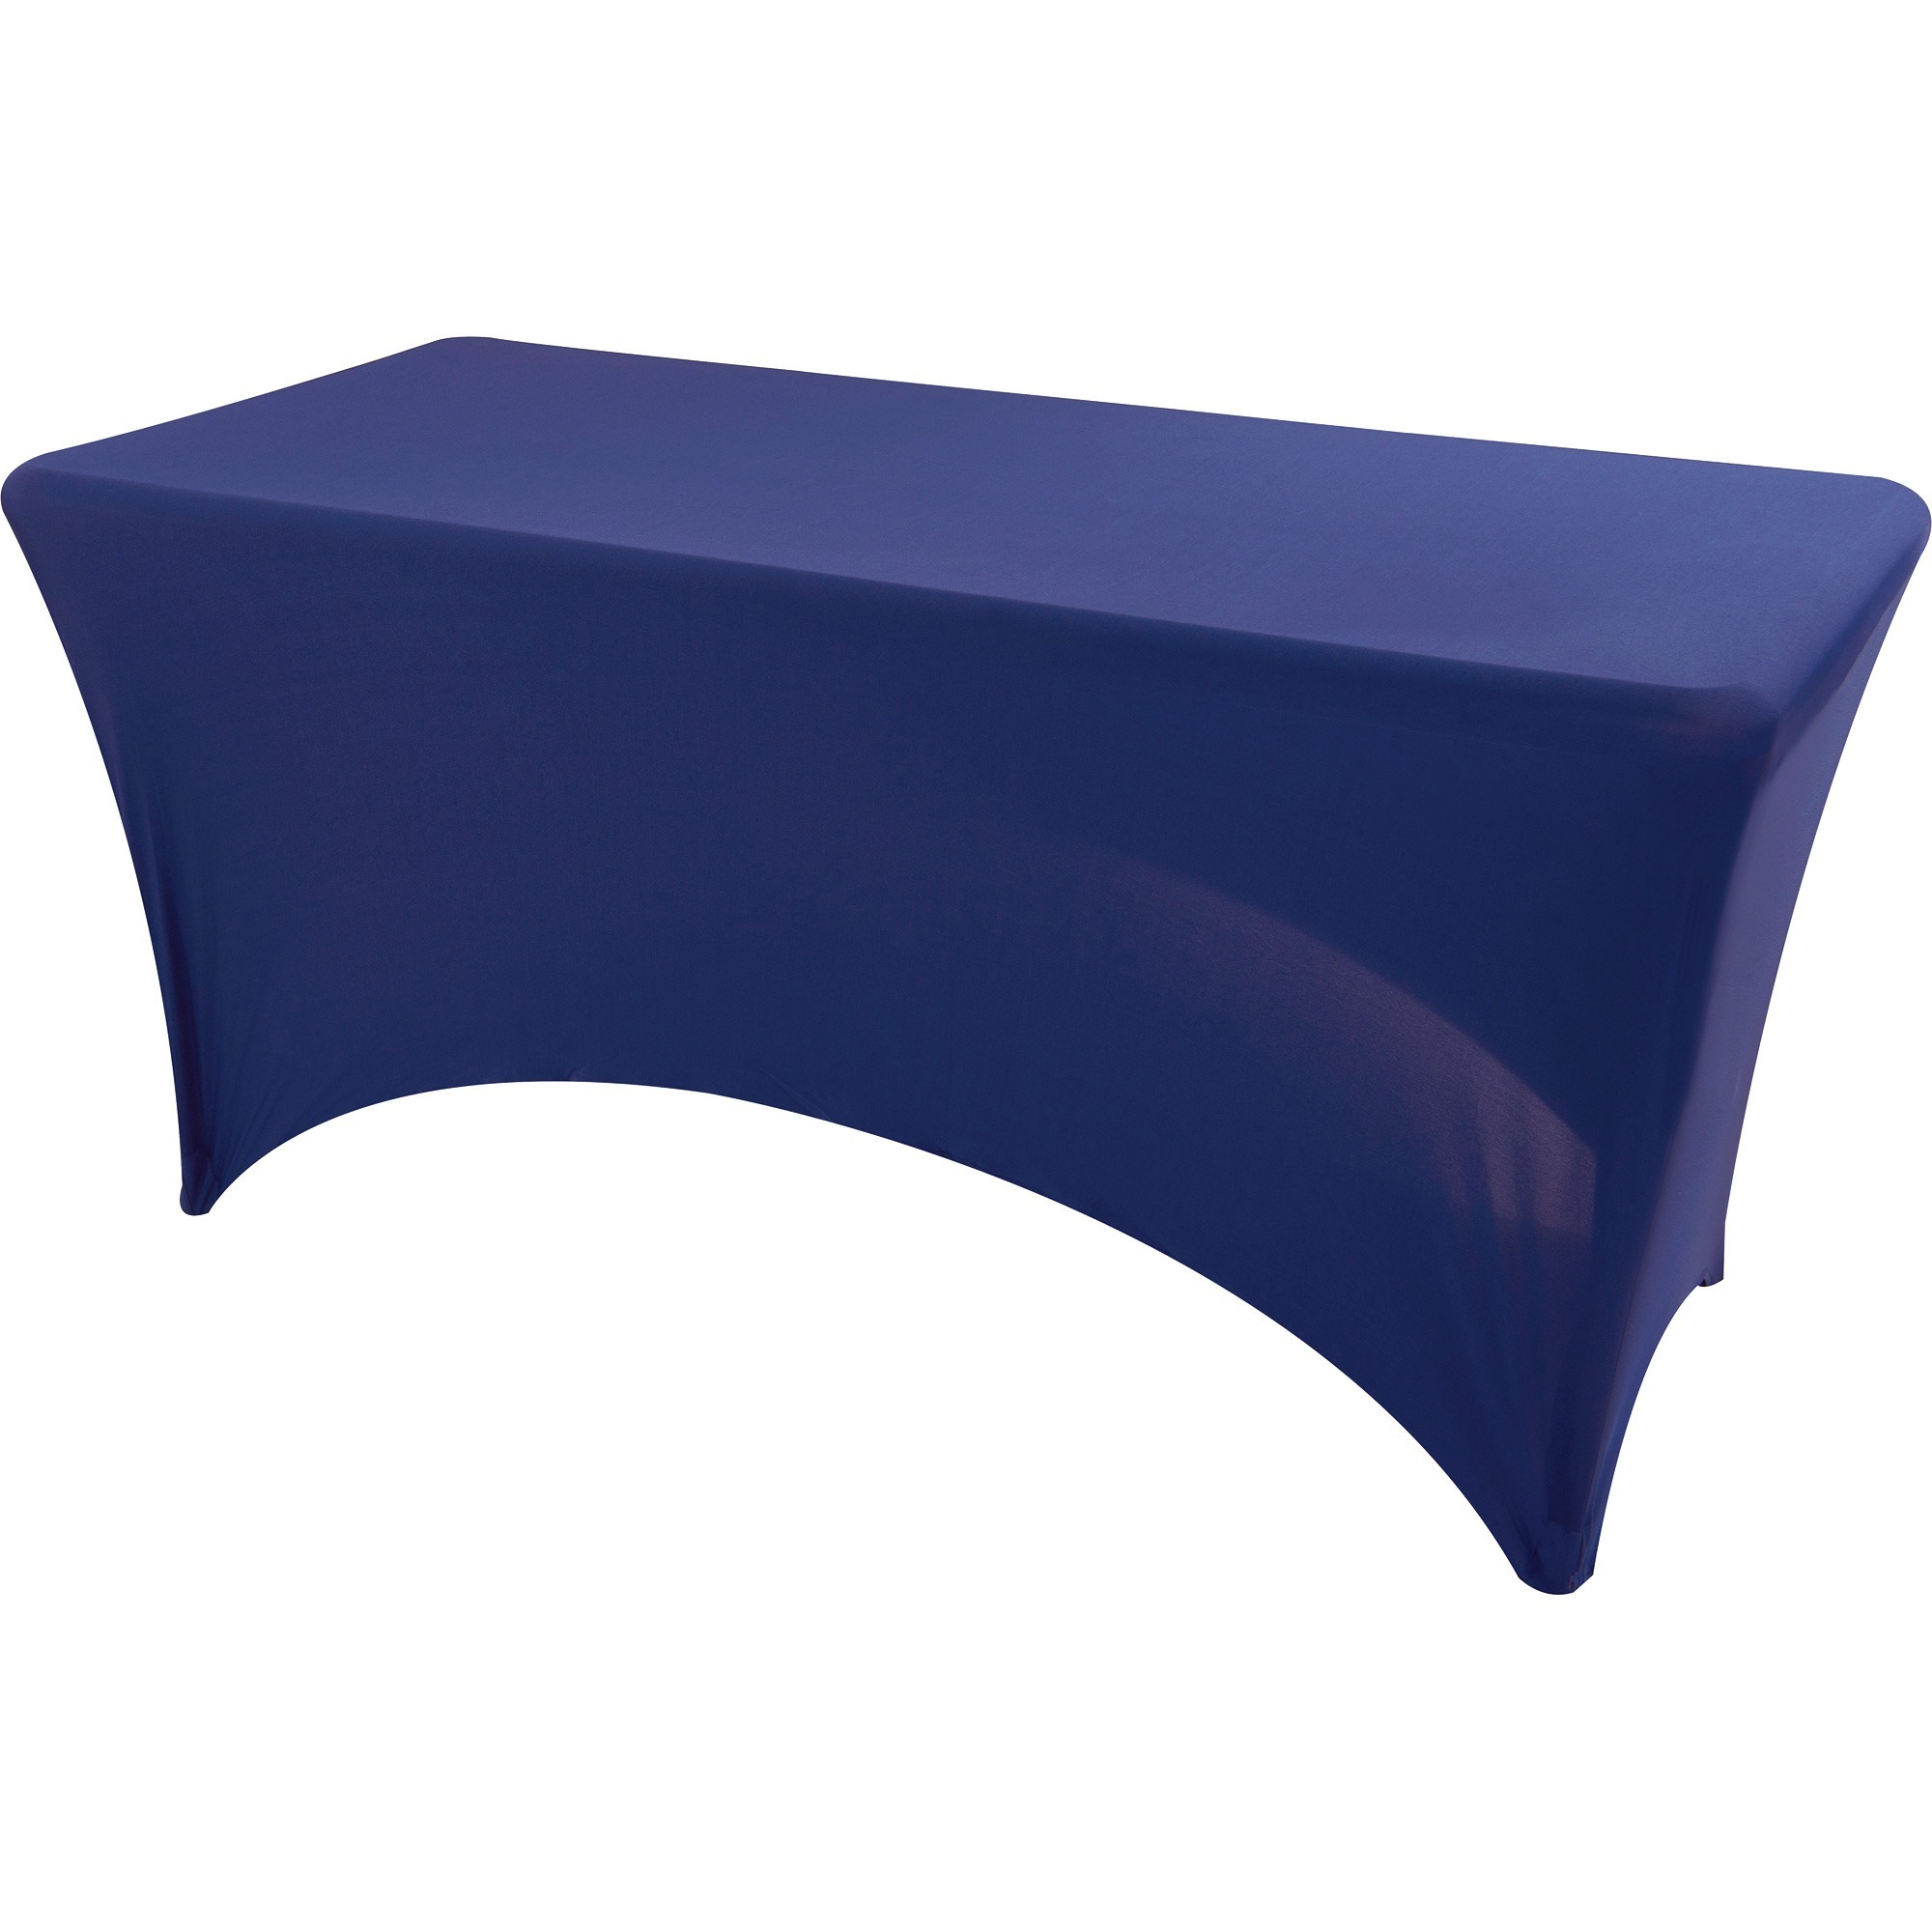 225 & Iceberg Stretchable Fitted Table Cover - 1 Each - Fabricel - Blue